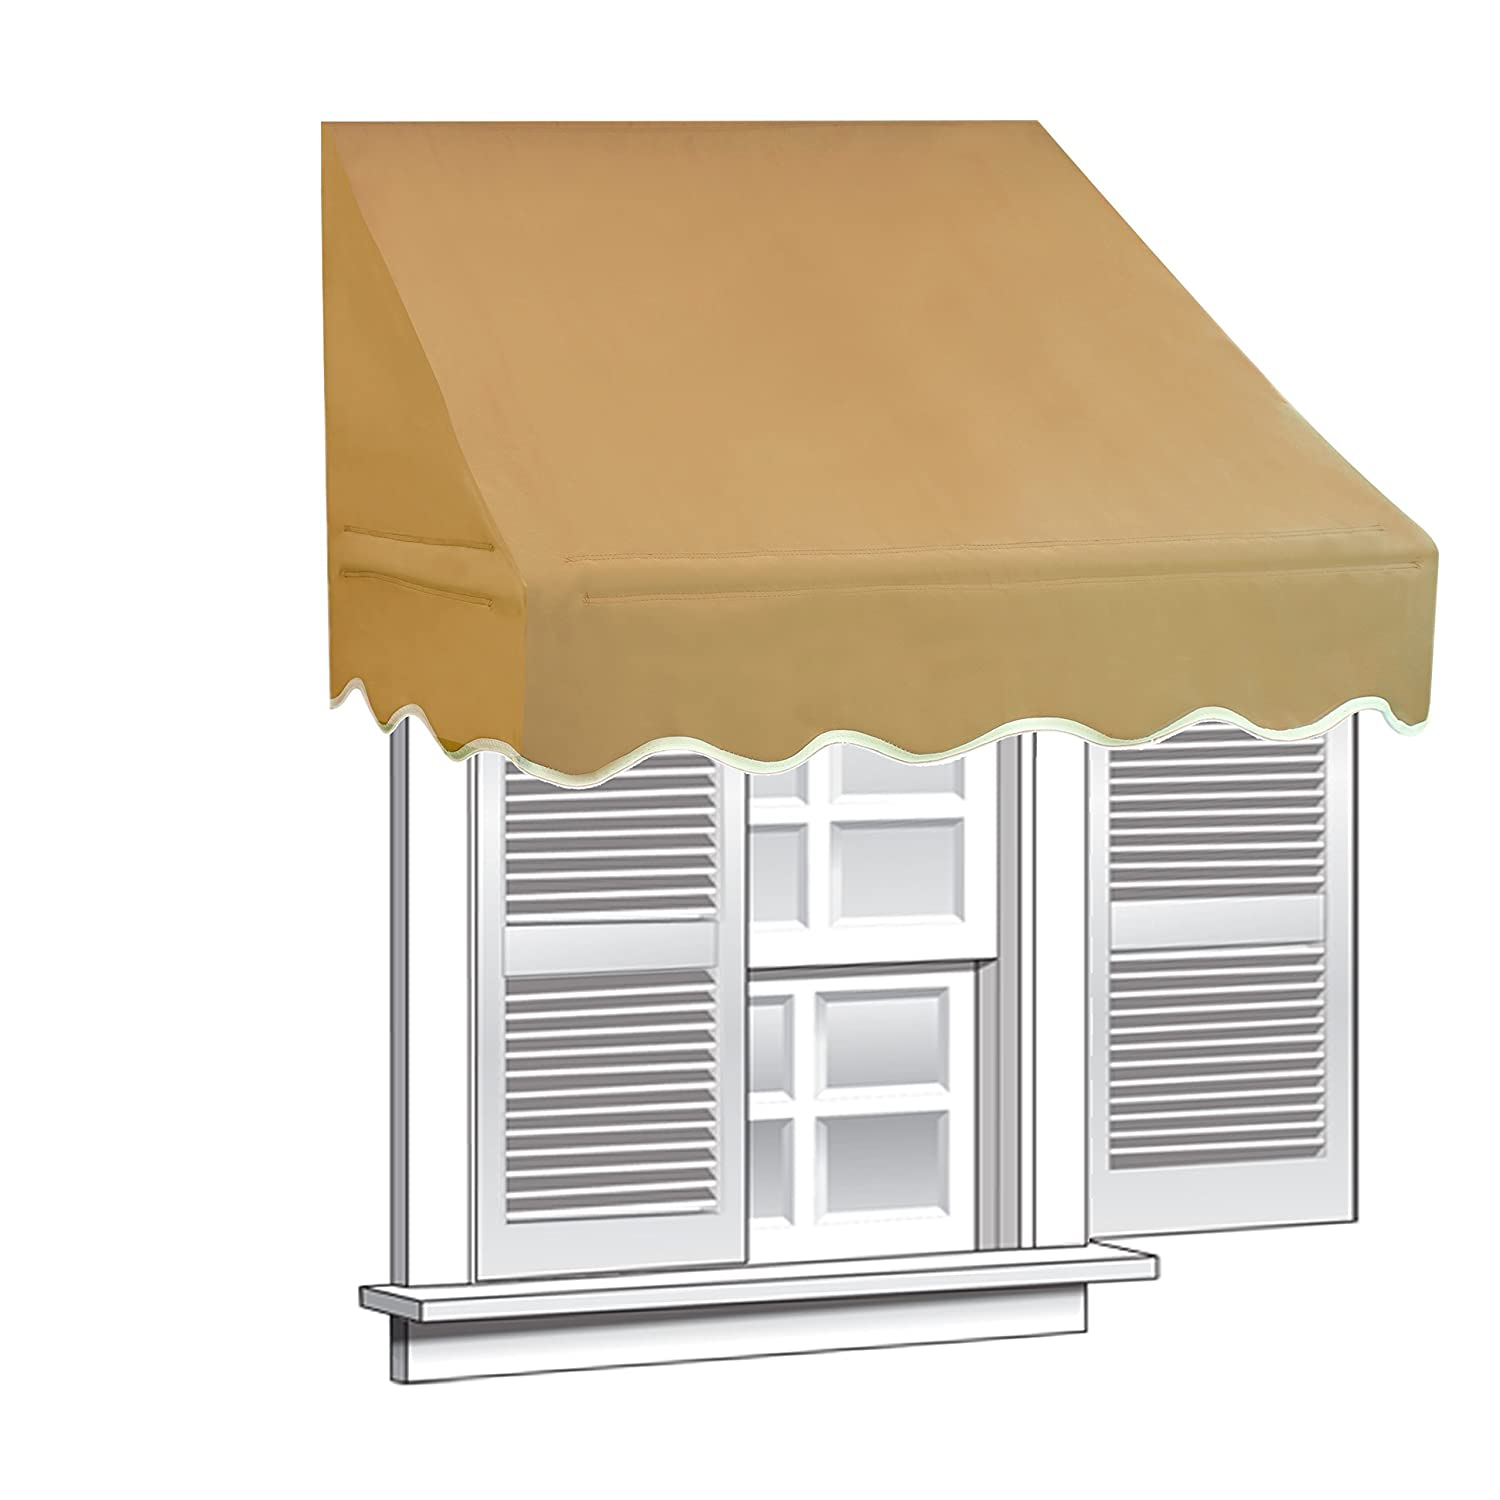 d x palram pdx w joya outdoor reviews wayfair patio ft awning